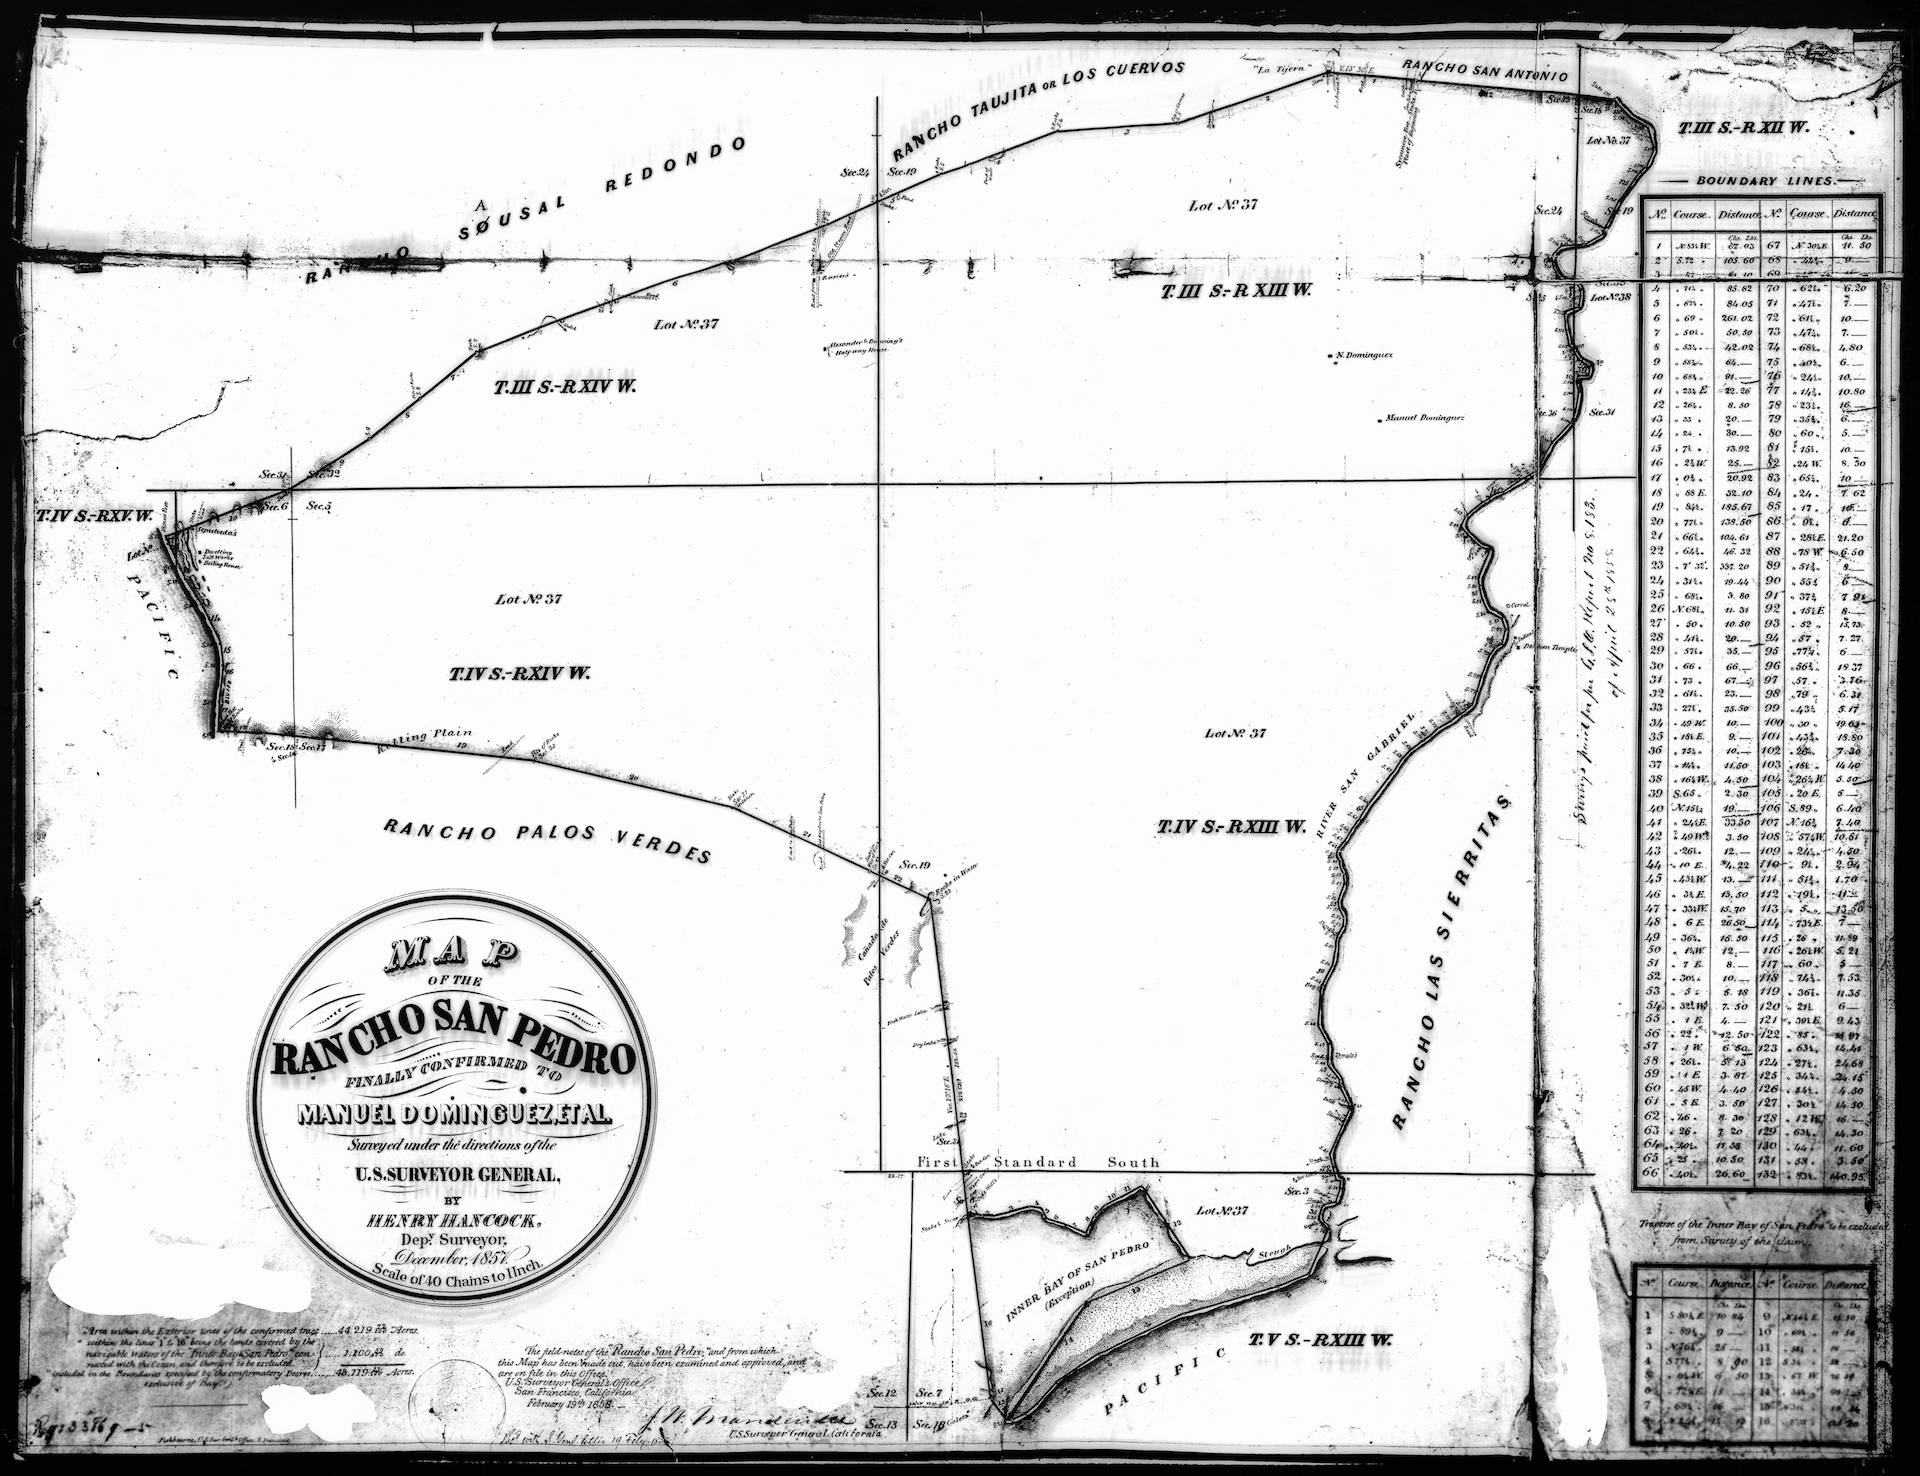 Survey of Rancho San Pedro